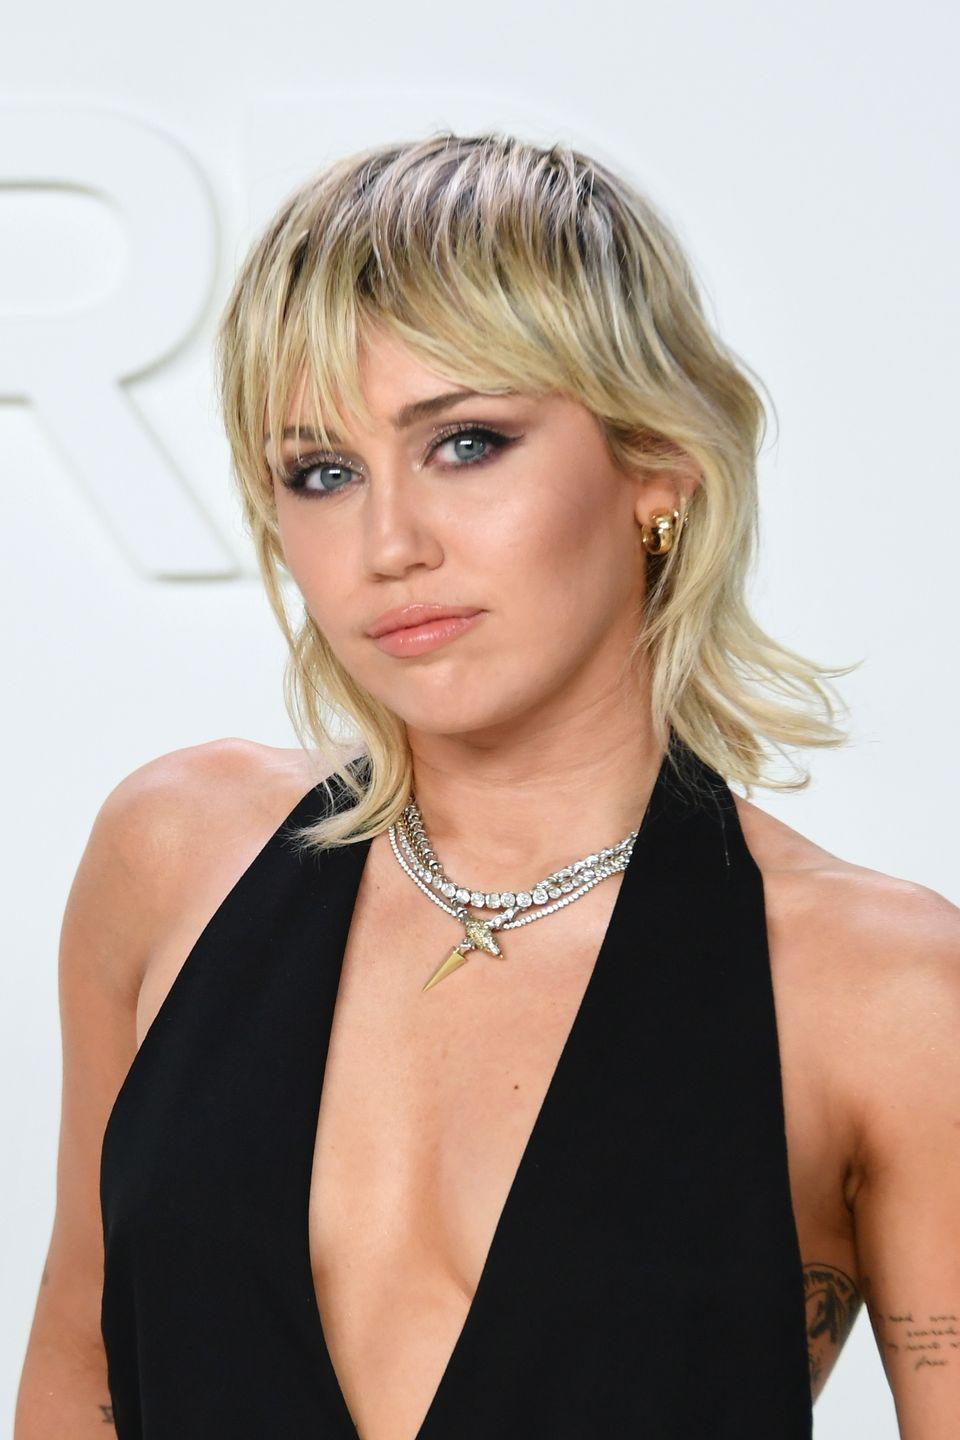 <p>Miley's latest style seems slightly mullet-inspired, but so much cooler. The grown-out roots give her style an extra edge that's perfect for anyone who loves going against the norm. </p>